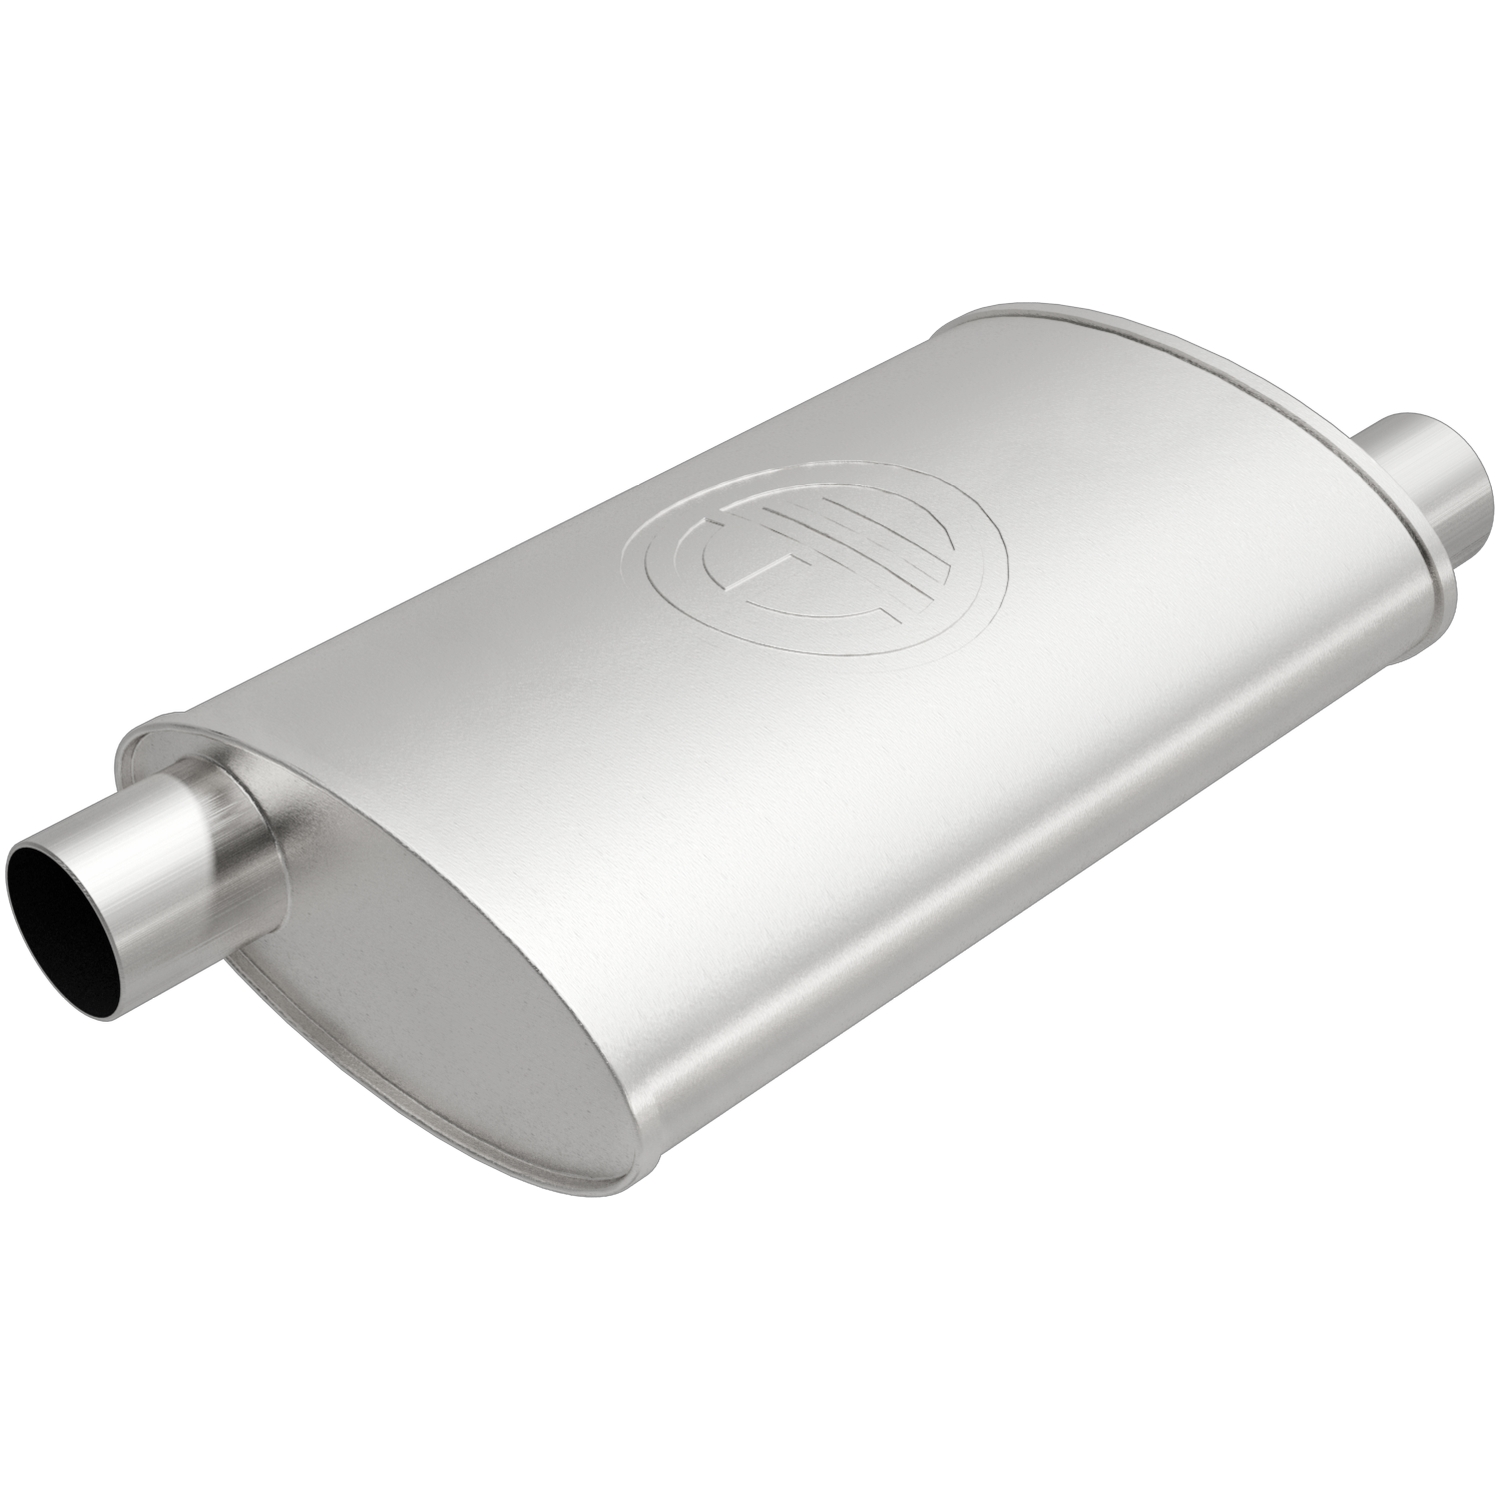 100-1746 Bosal USA Exhaust Muffler Aluminized Steel Case